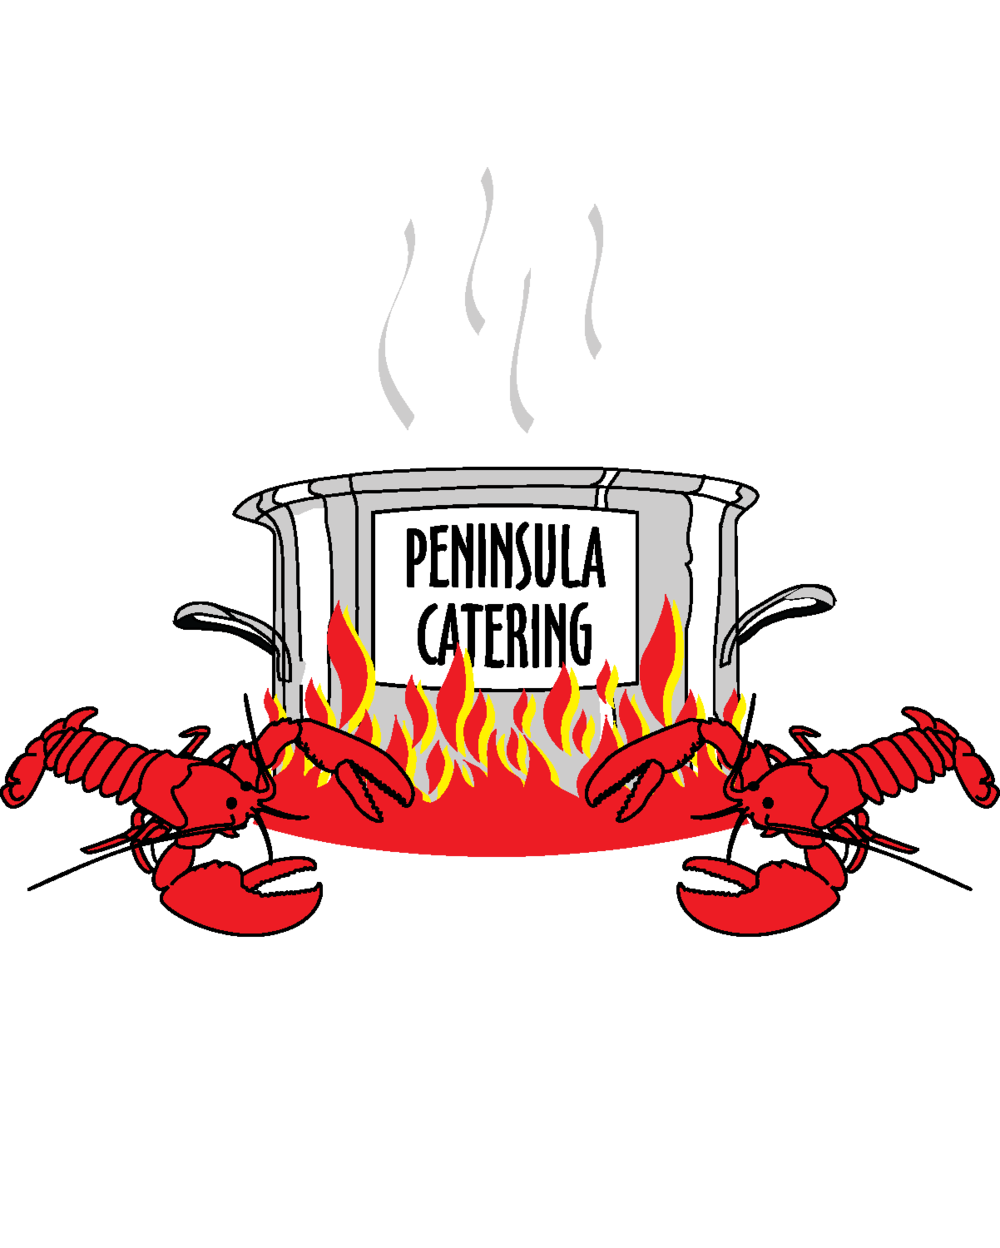 Cateringlogo2.png